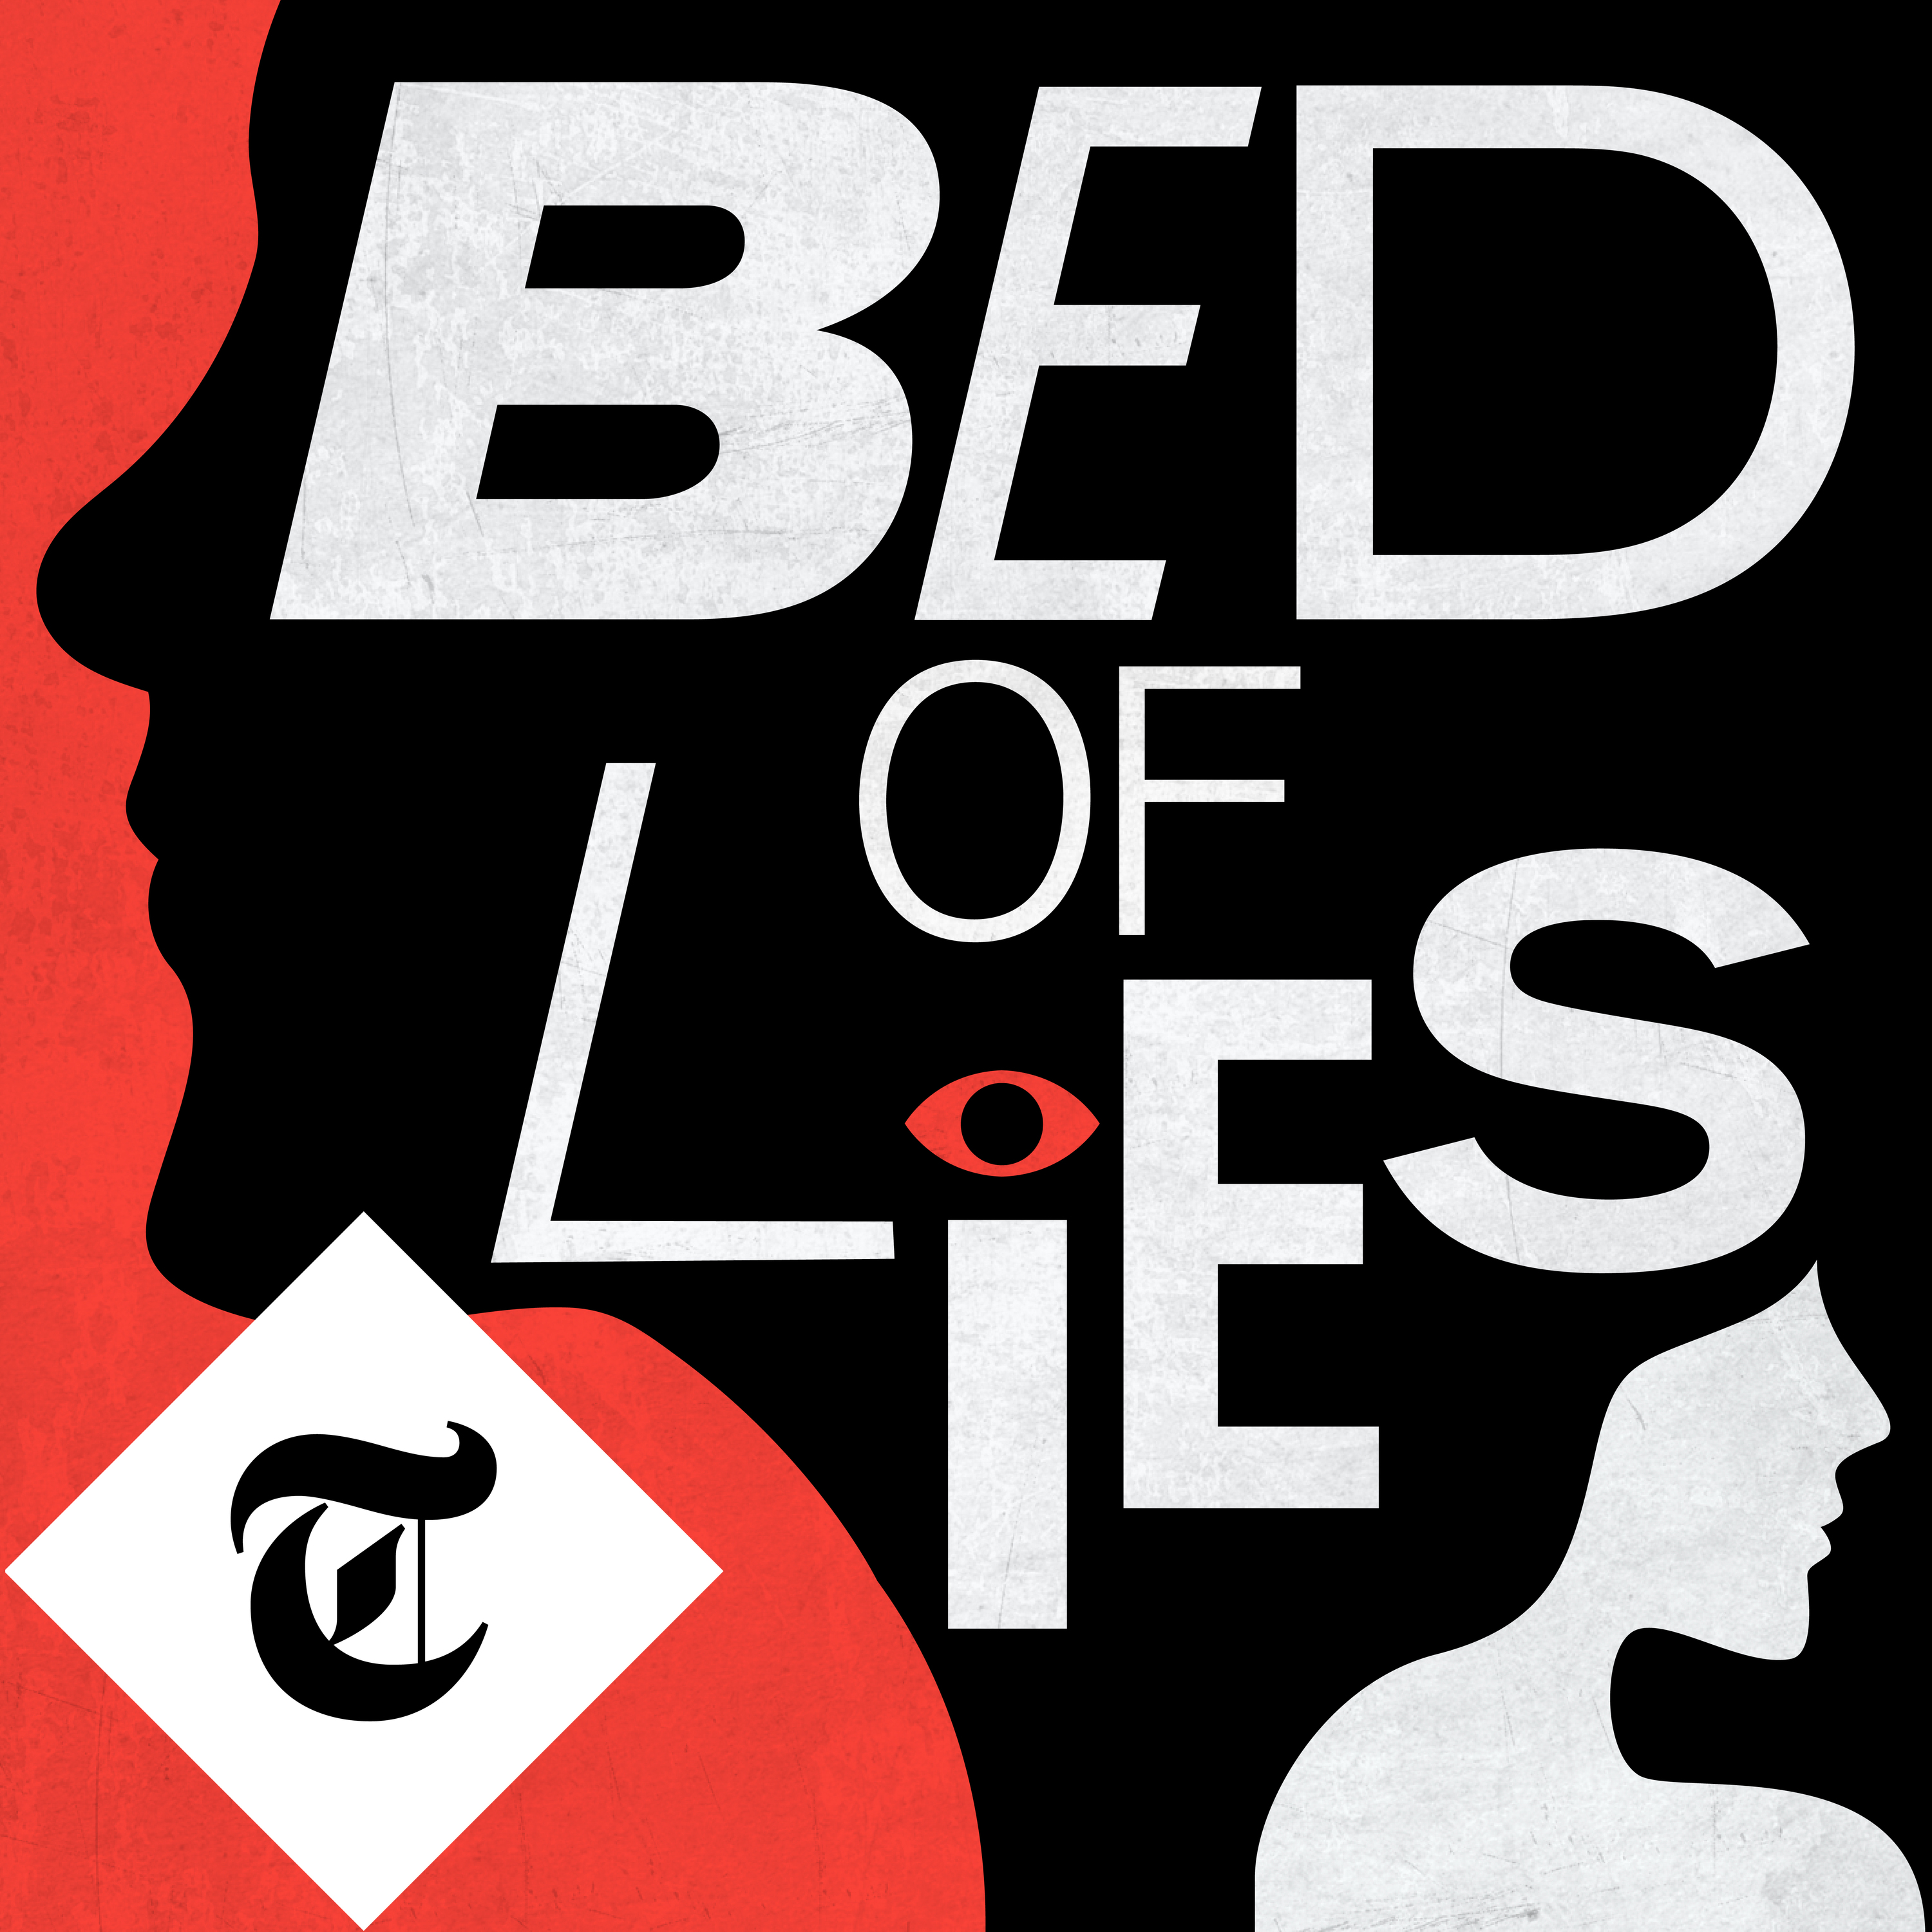 Introducing Bed of Lies